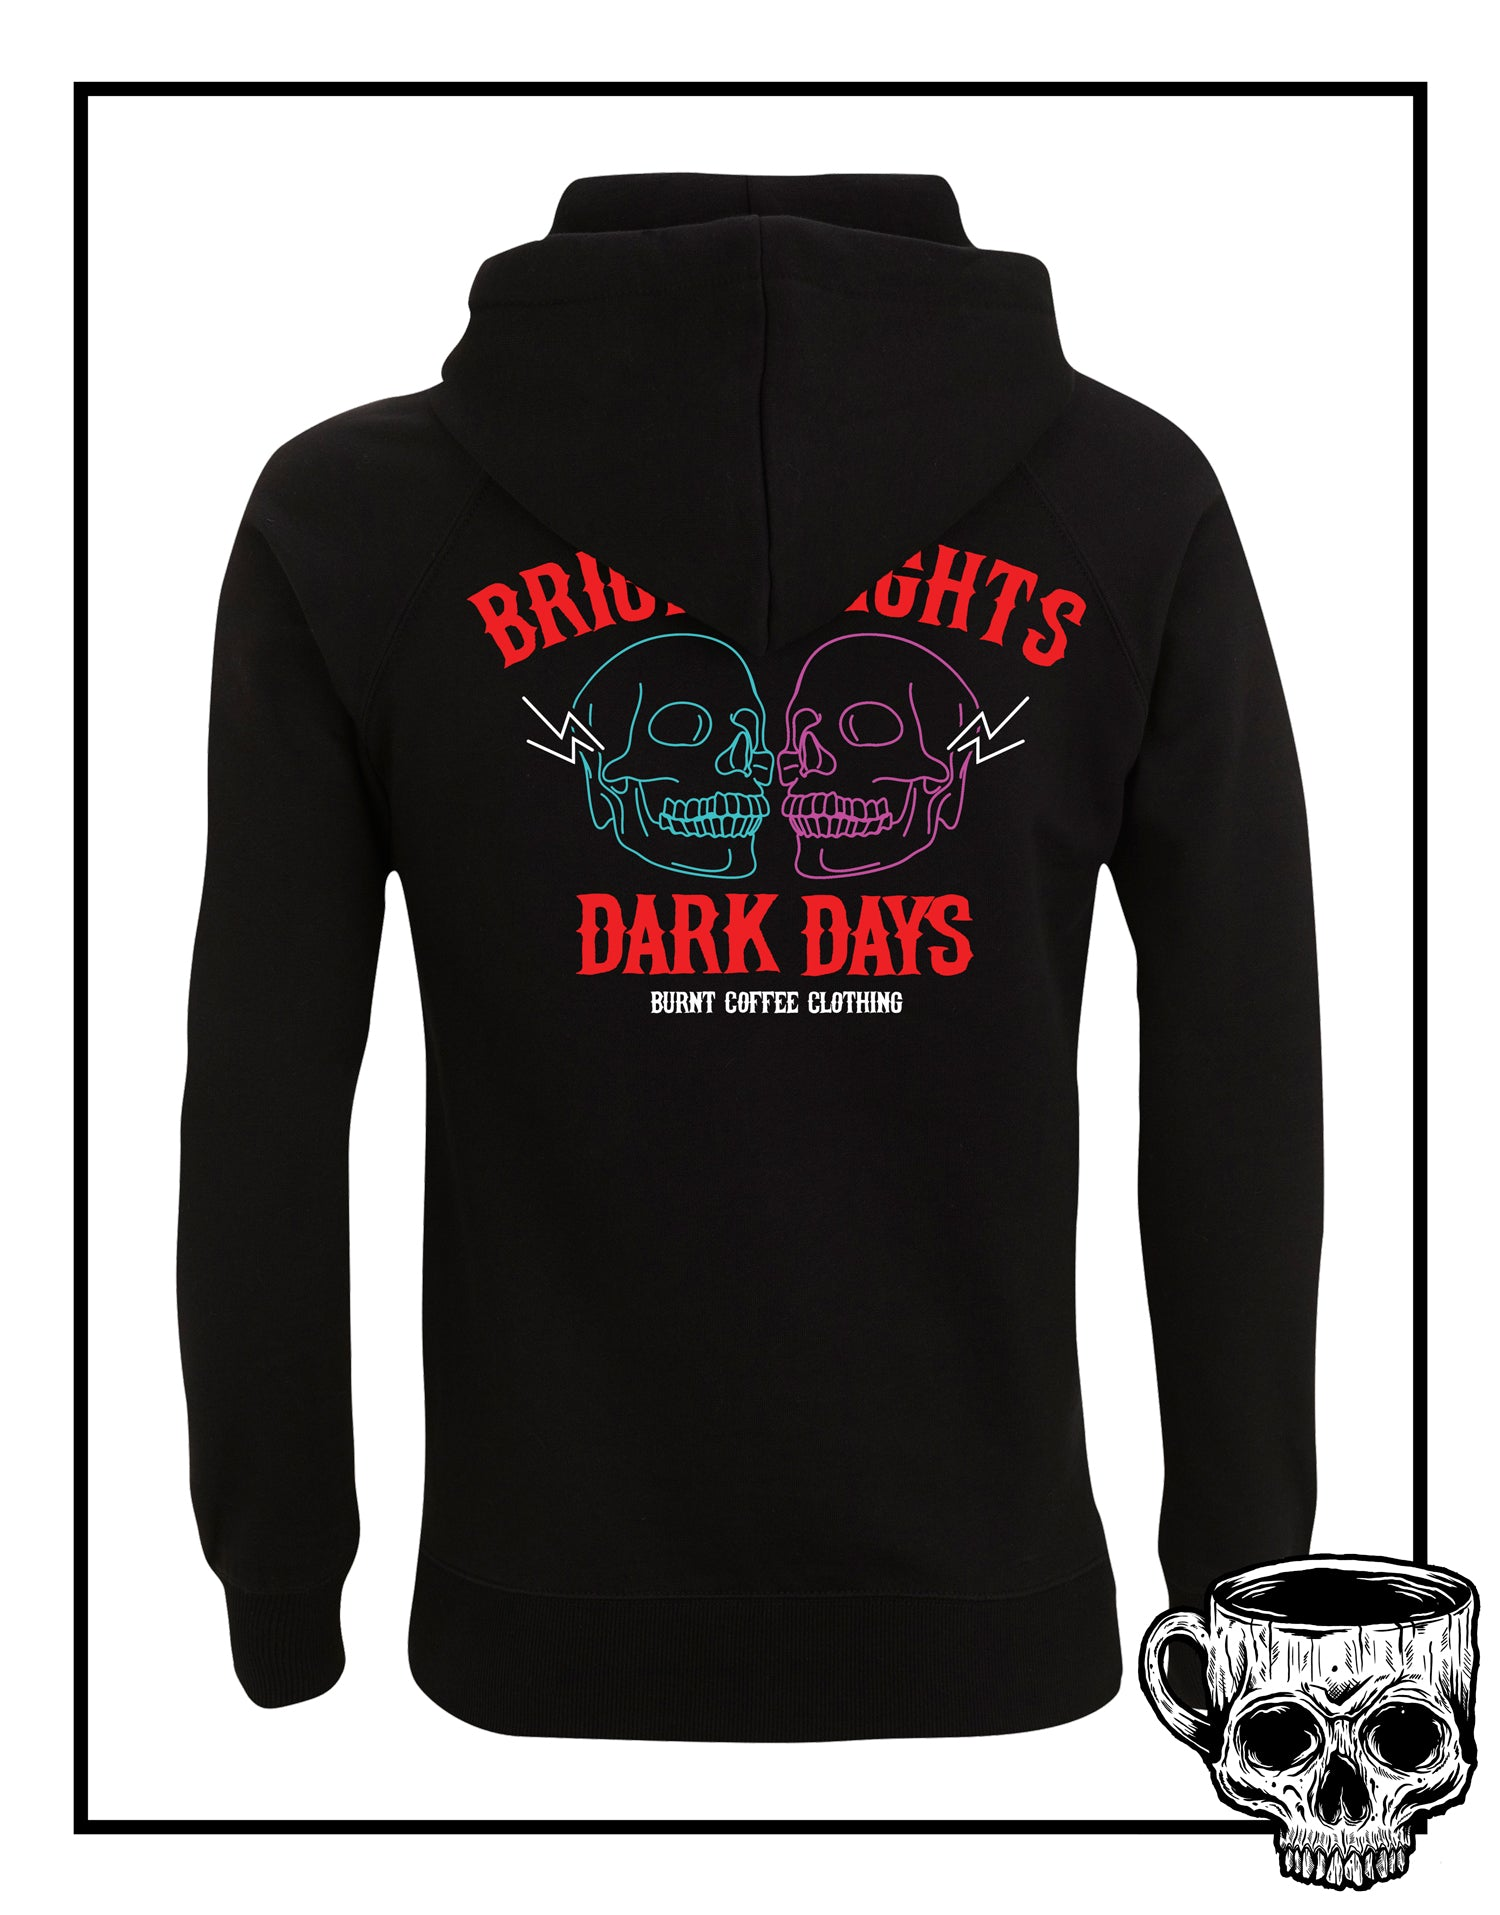 Bright Nights Hoodie - Burnt Coffee Clothing